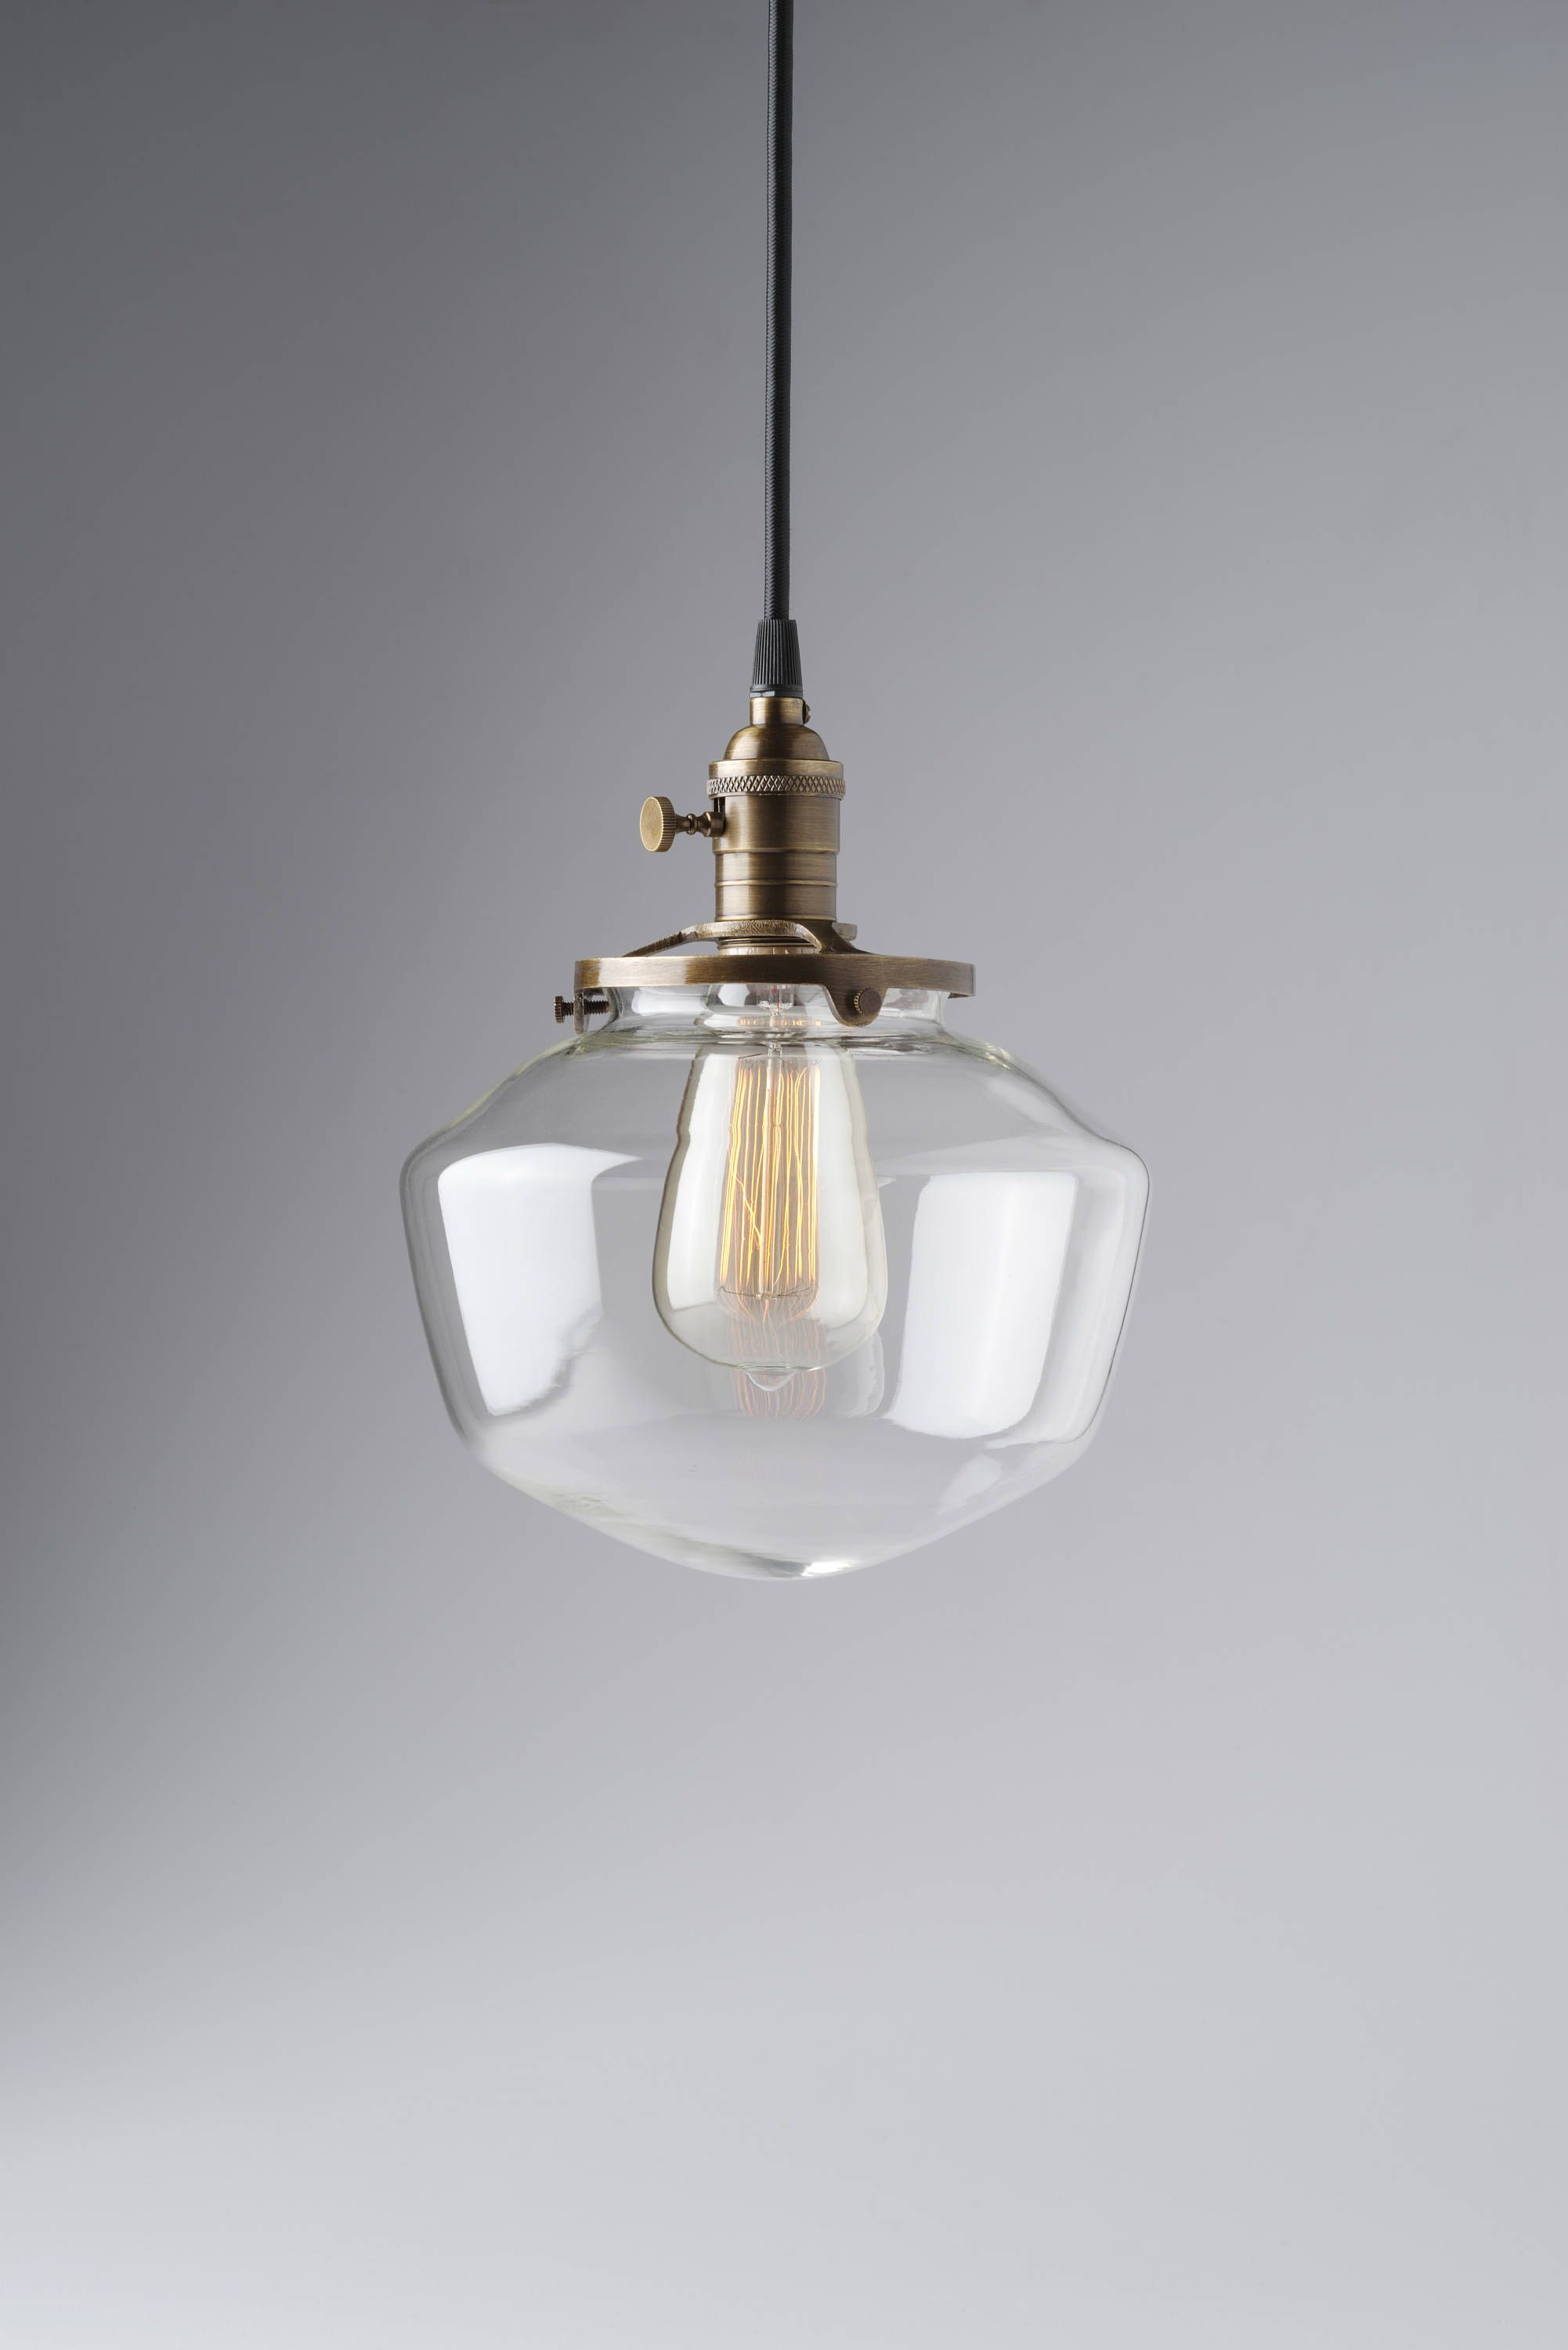 8 Clear Gl Shade Schoolhouse Style Light Pendant Fixture